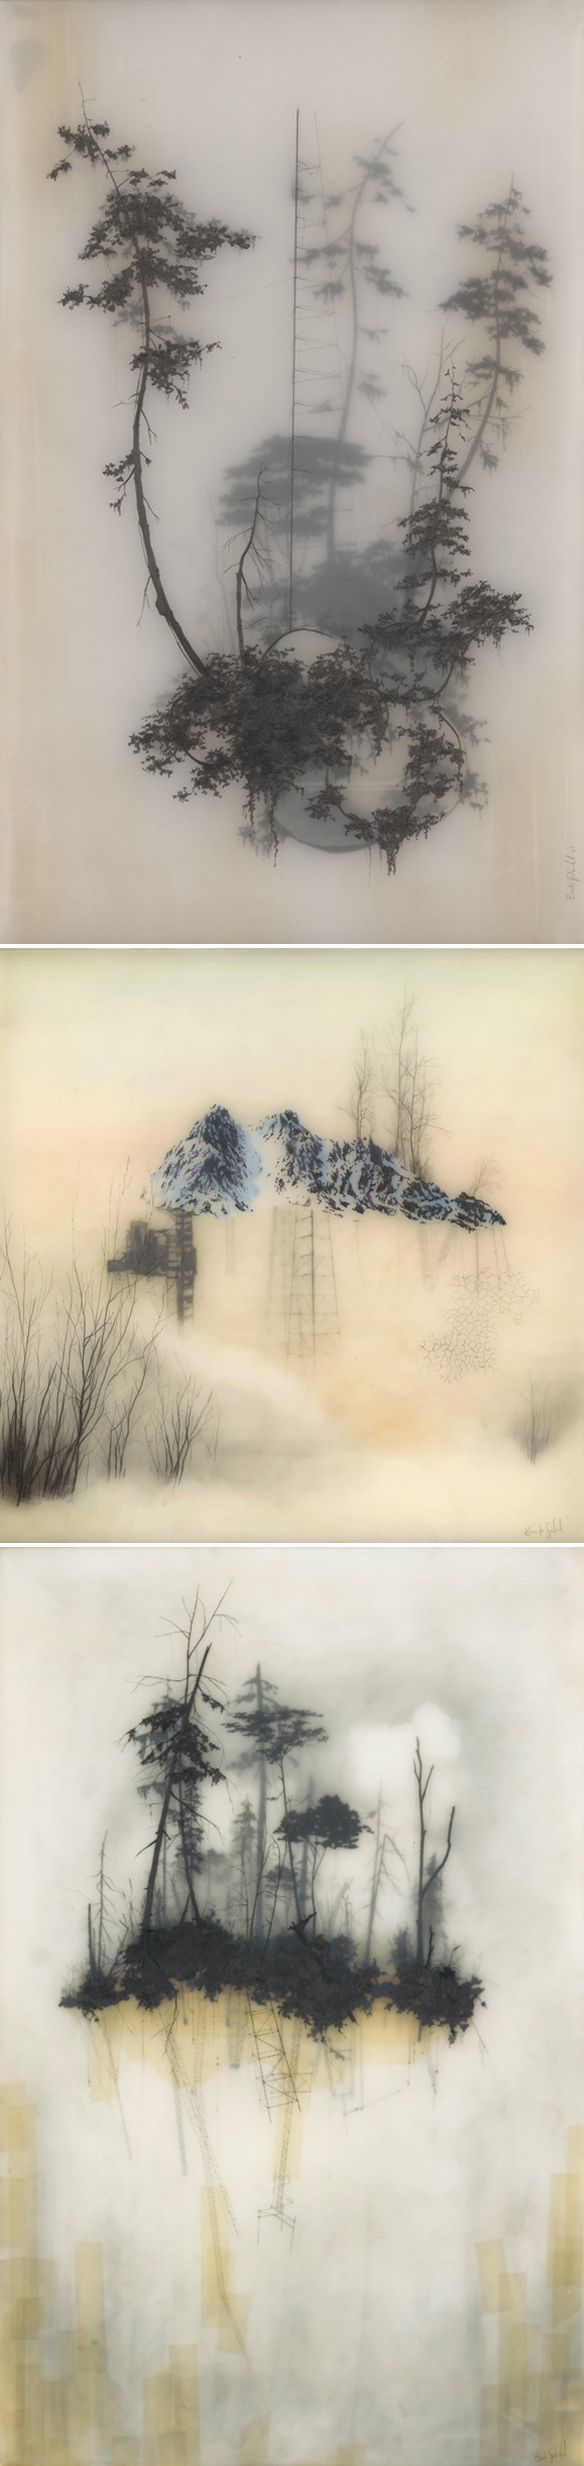 'time' brooks salzwedel - lovely layers